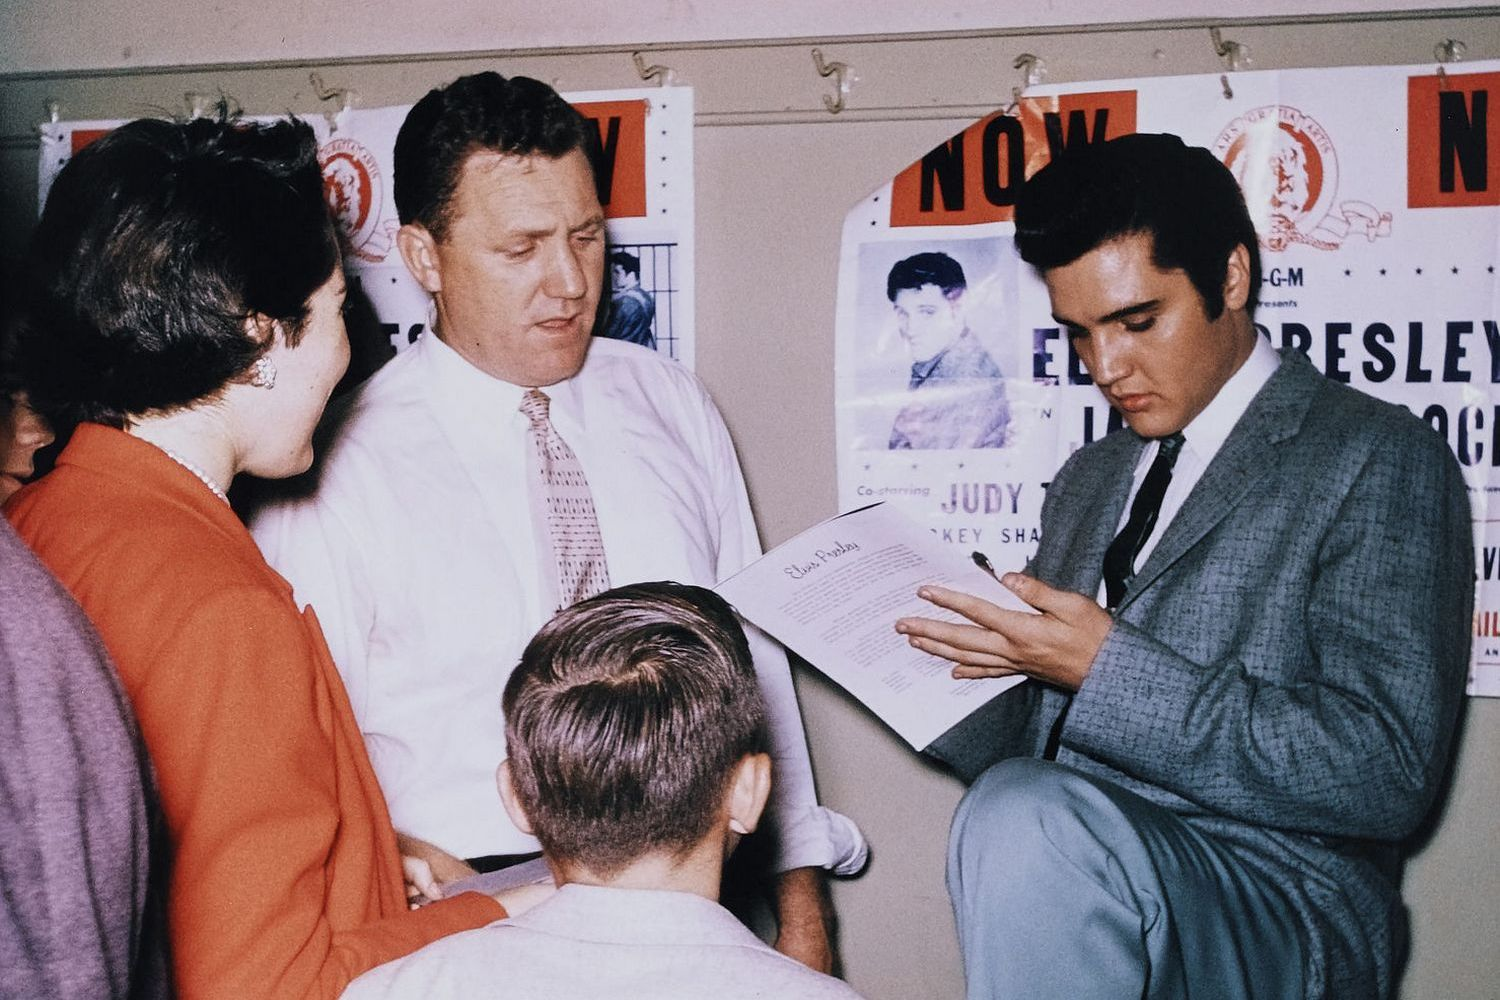 Elvis Presley Souvenir Photo Album - San Francisco (October 26, 1957) (Kari Paju)